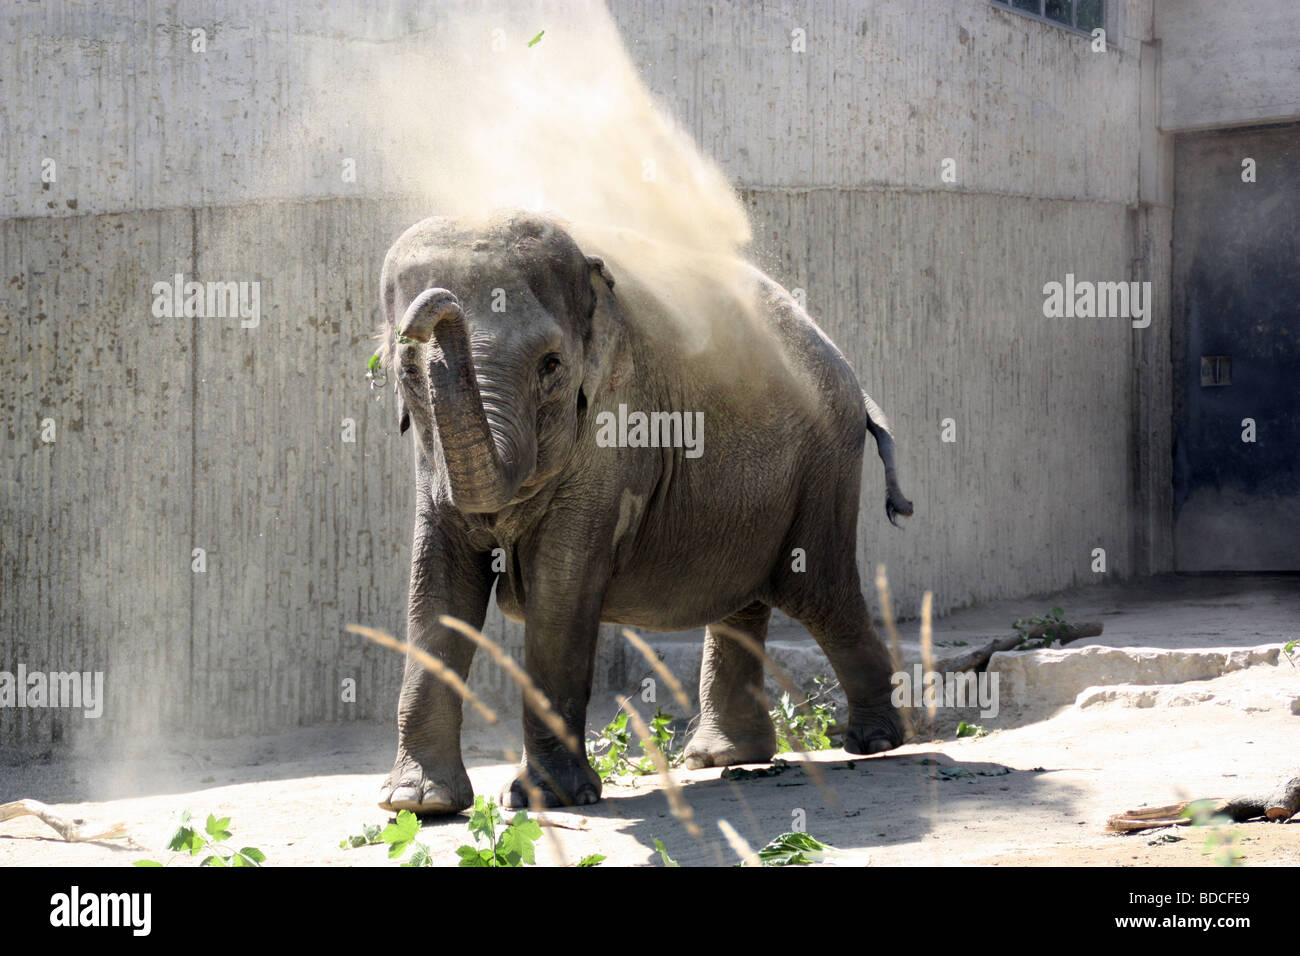 Elephant treating itself with a shower of dust. - Stock Image